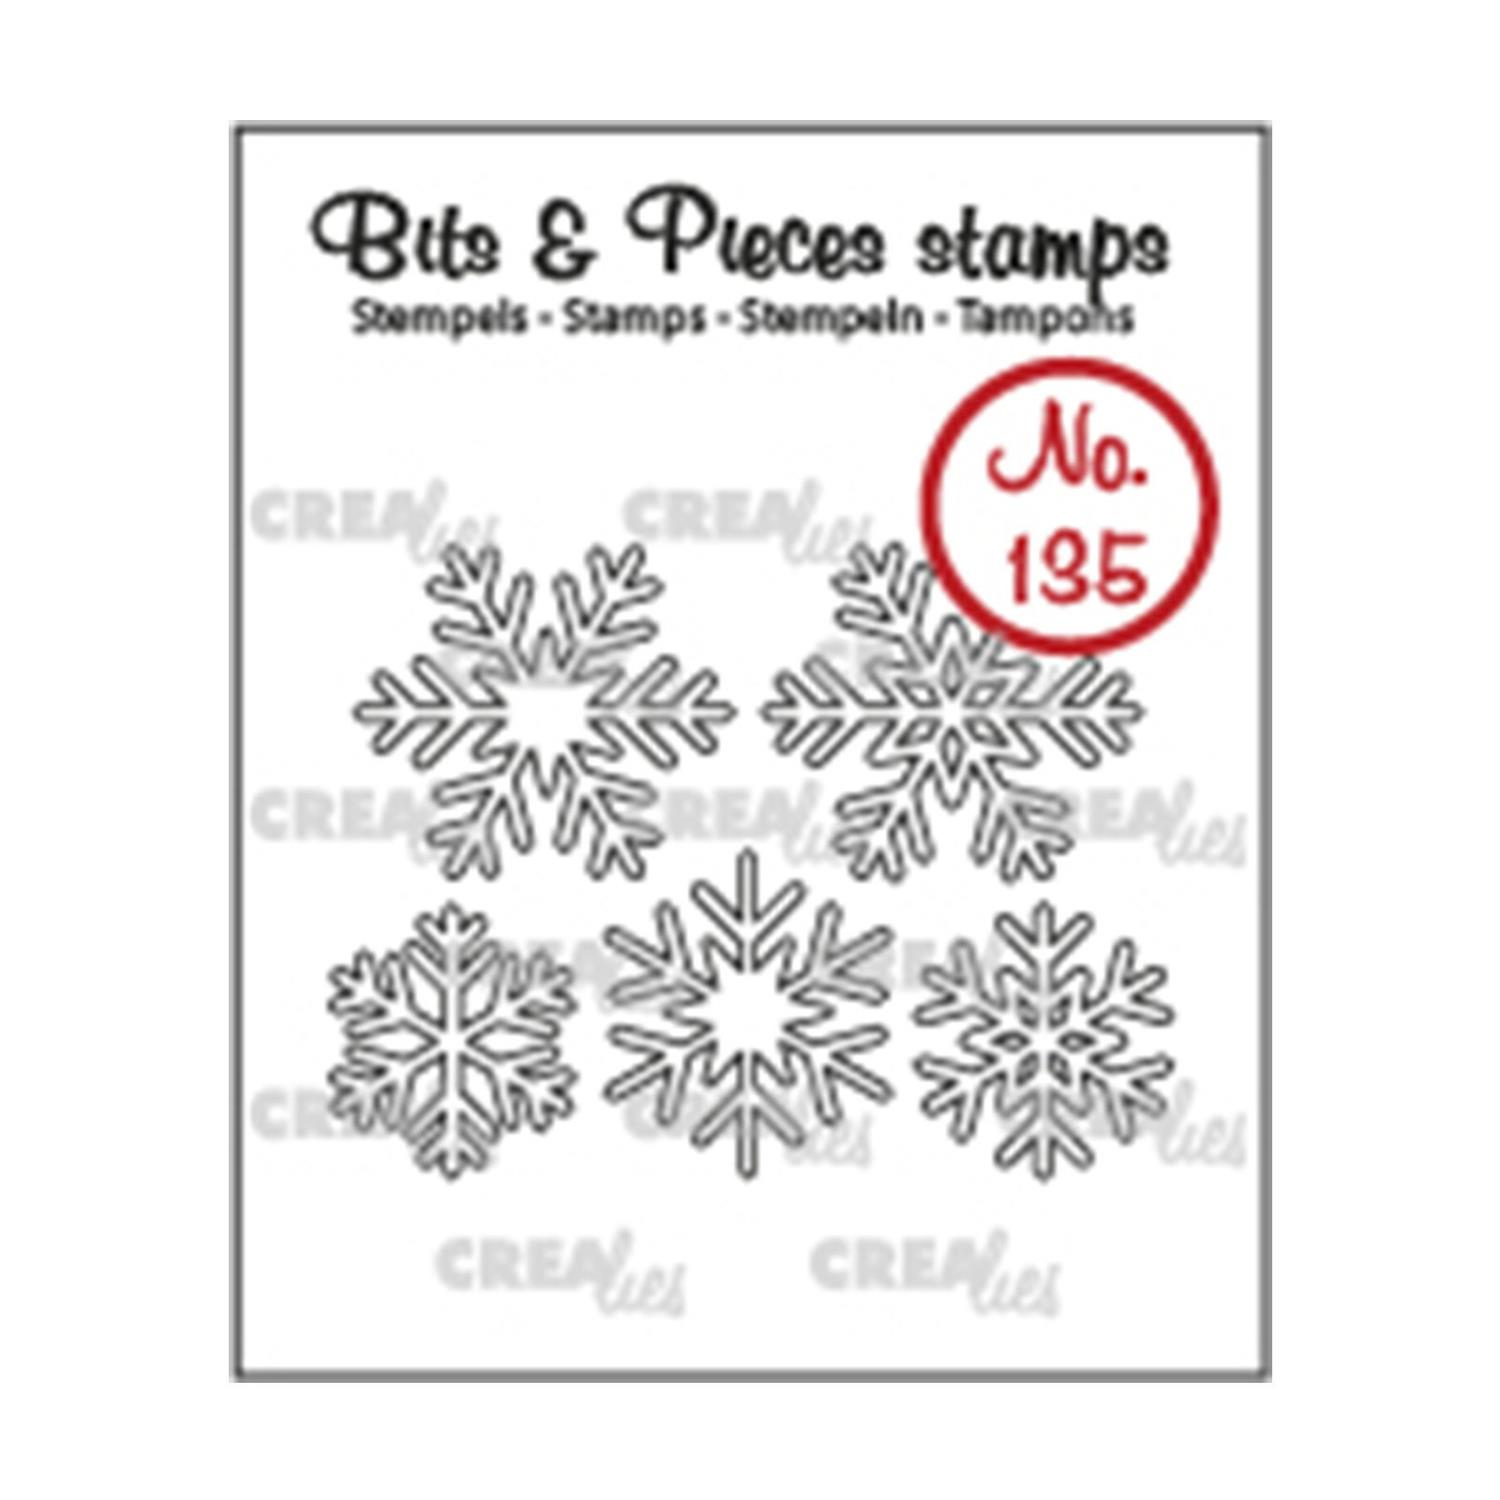 Crealies Bits & Pieces Stamps no.135 snowflakes